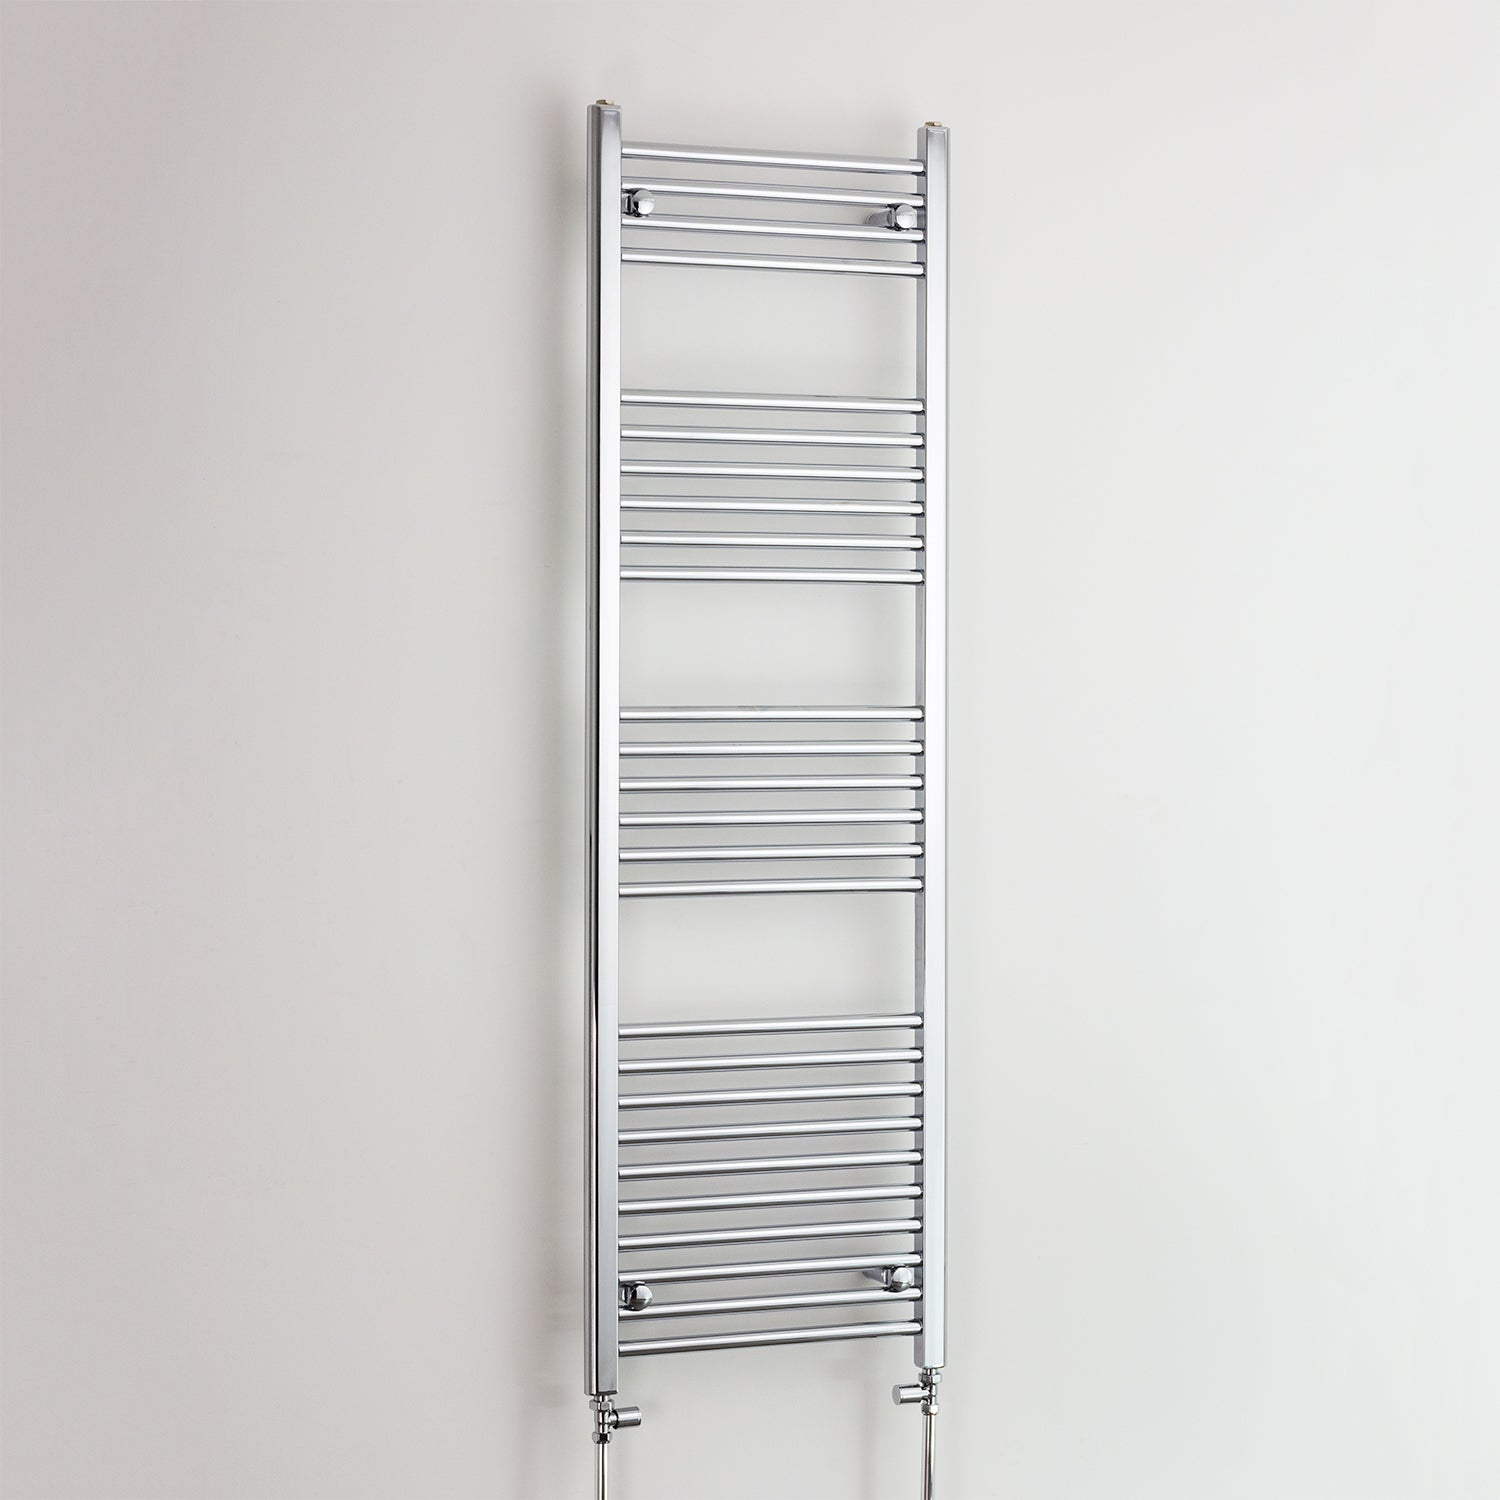 400mm Wide 1600mm High Curved Chrome Heated Towel Rail Radiator HTR,With Straight Valve